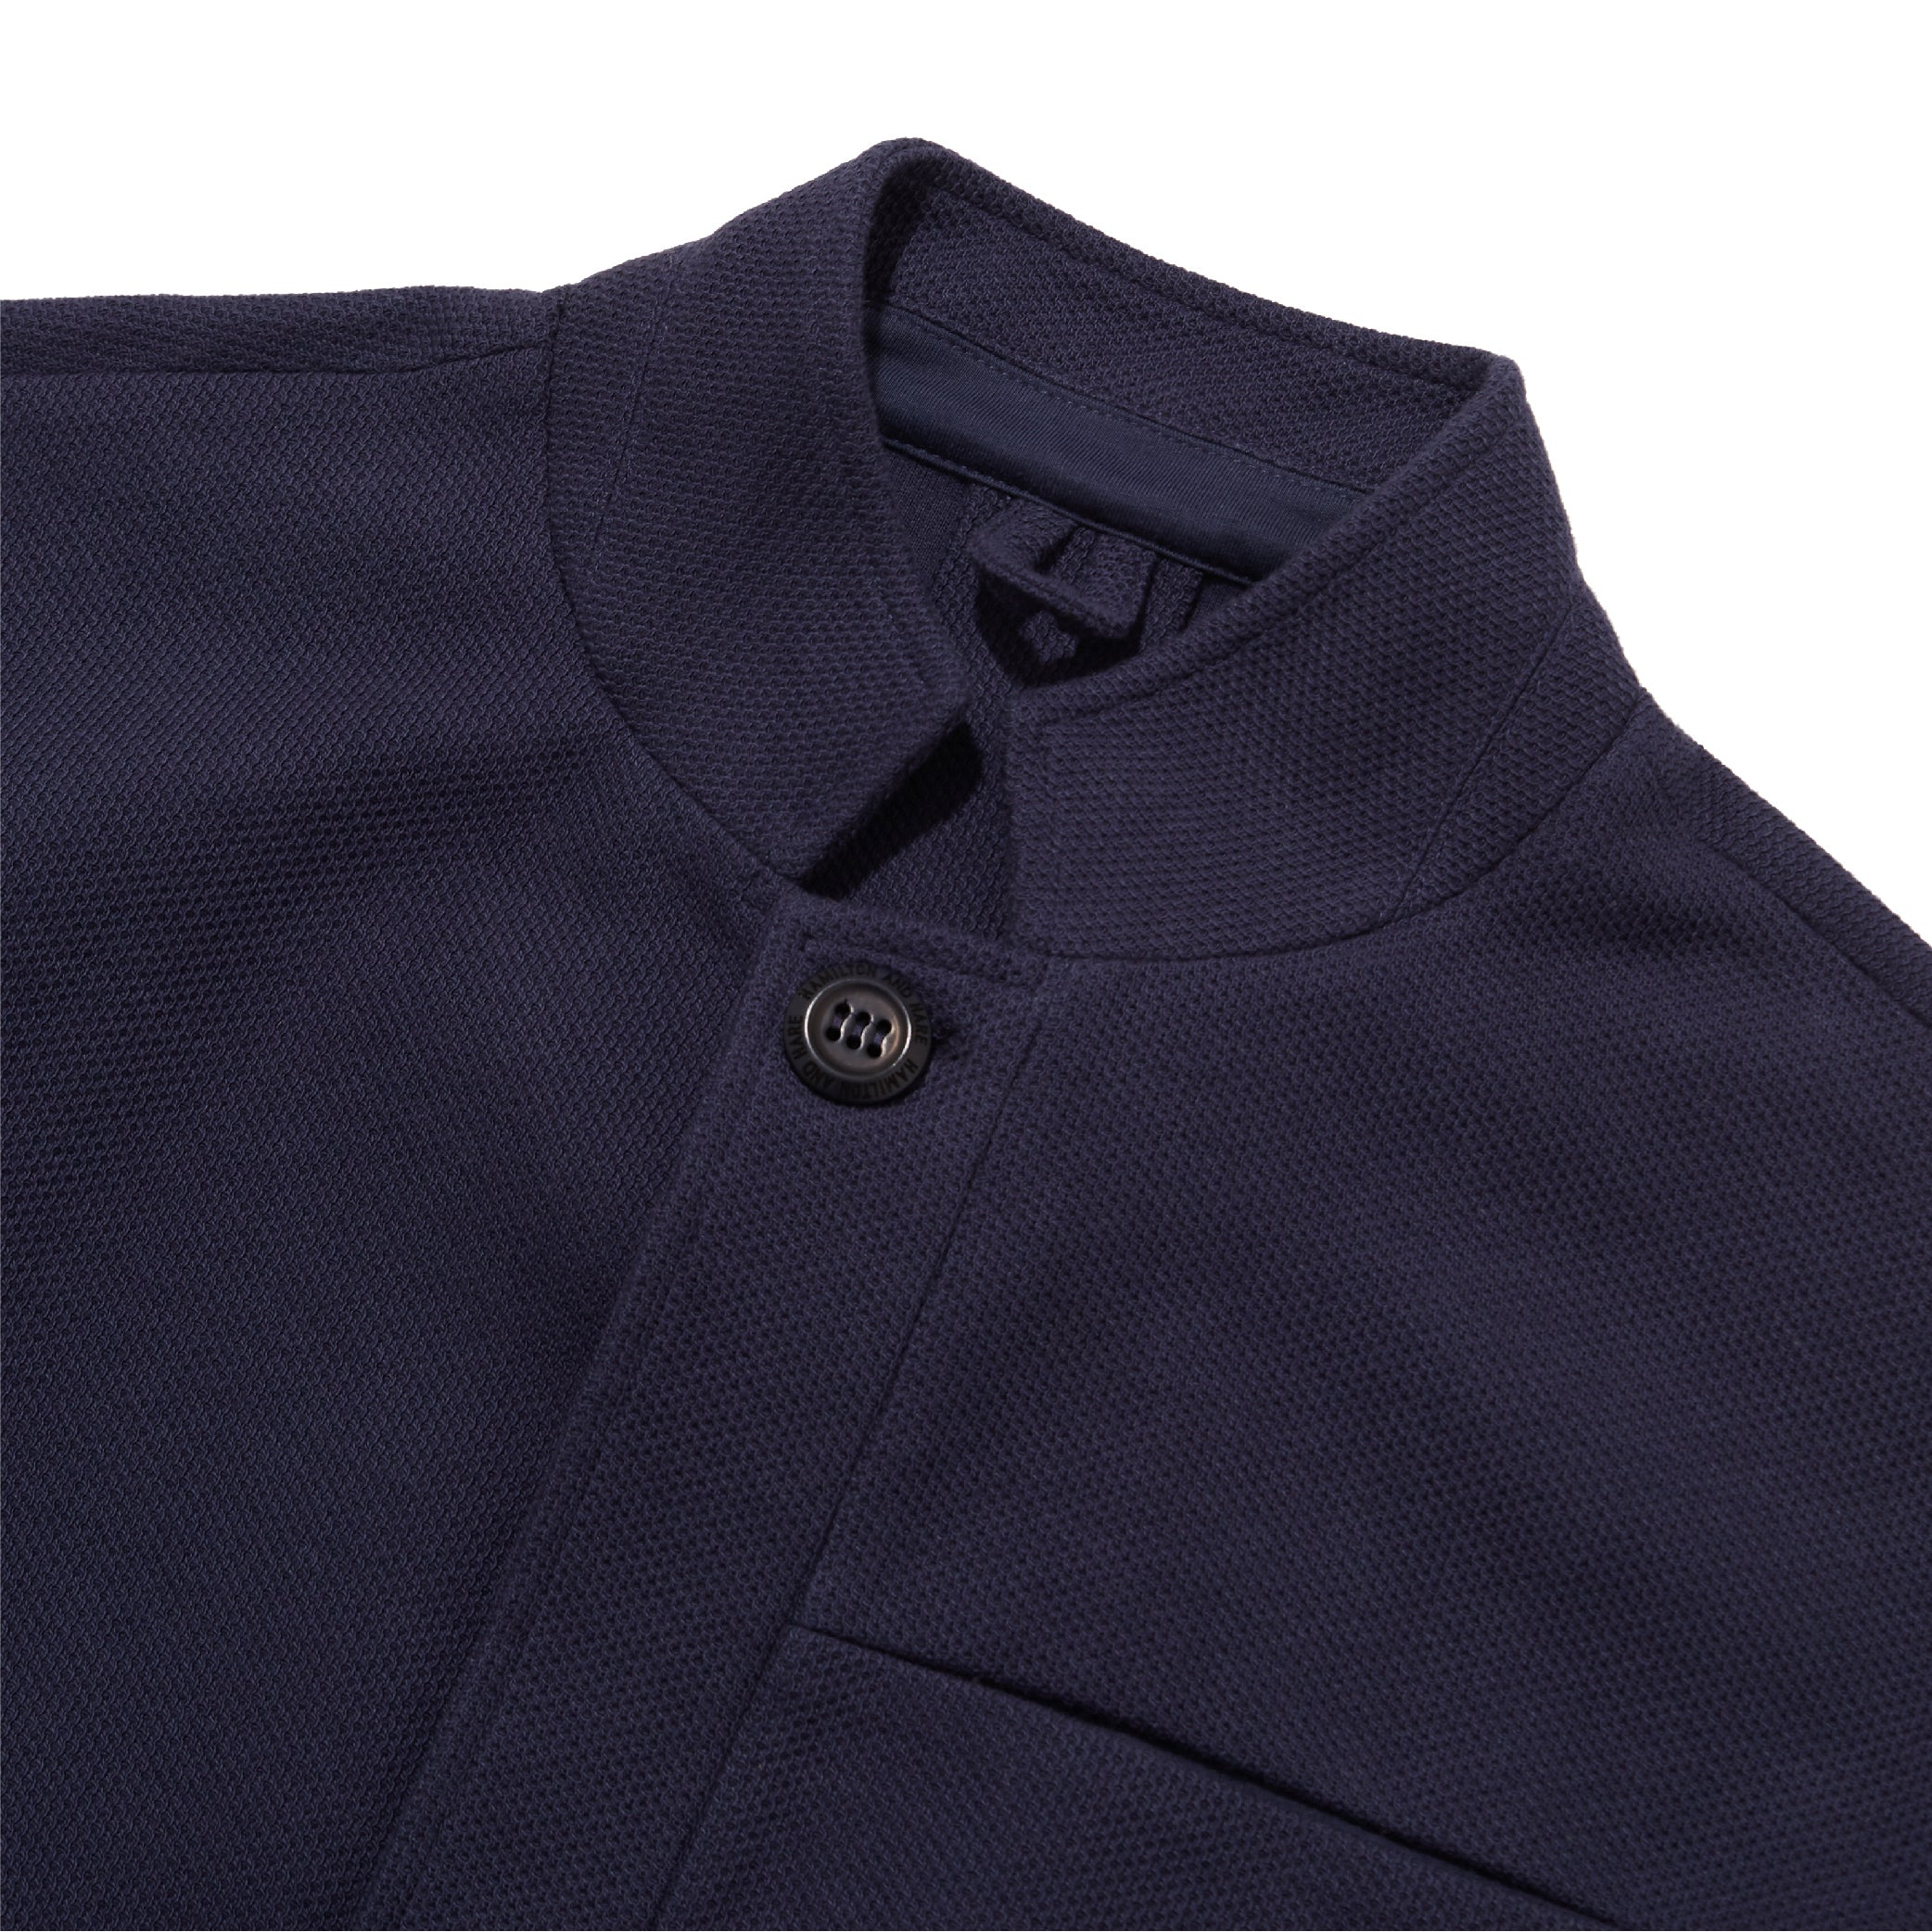 Journeyman Jacket - Navy Texture - Hamilton and Hare Ltd